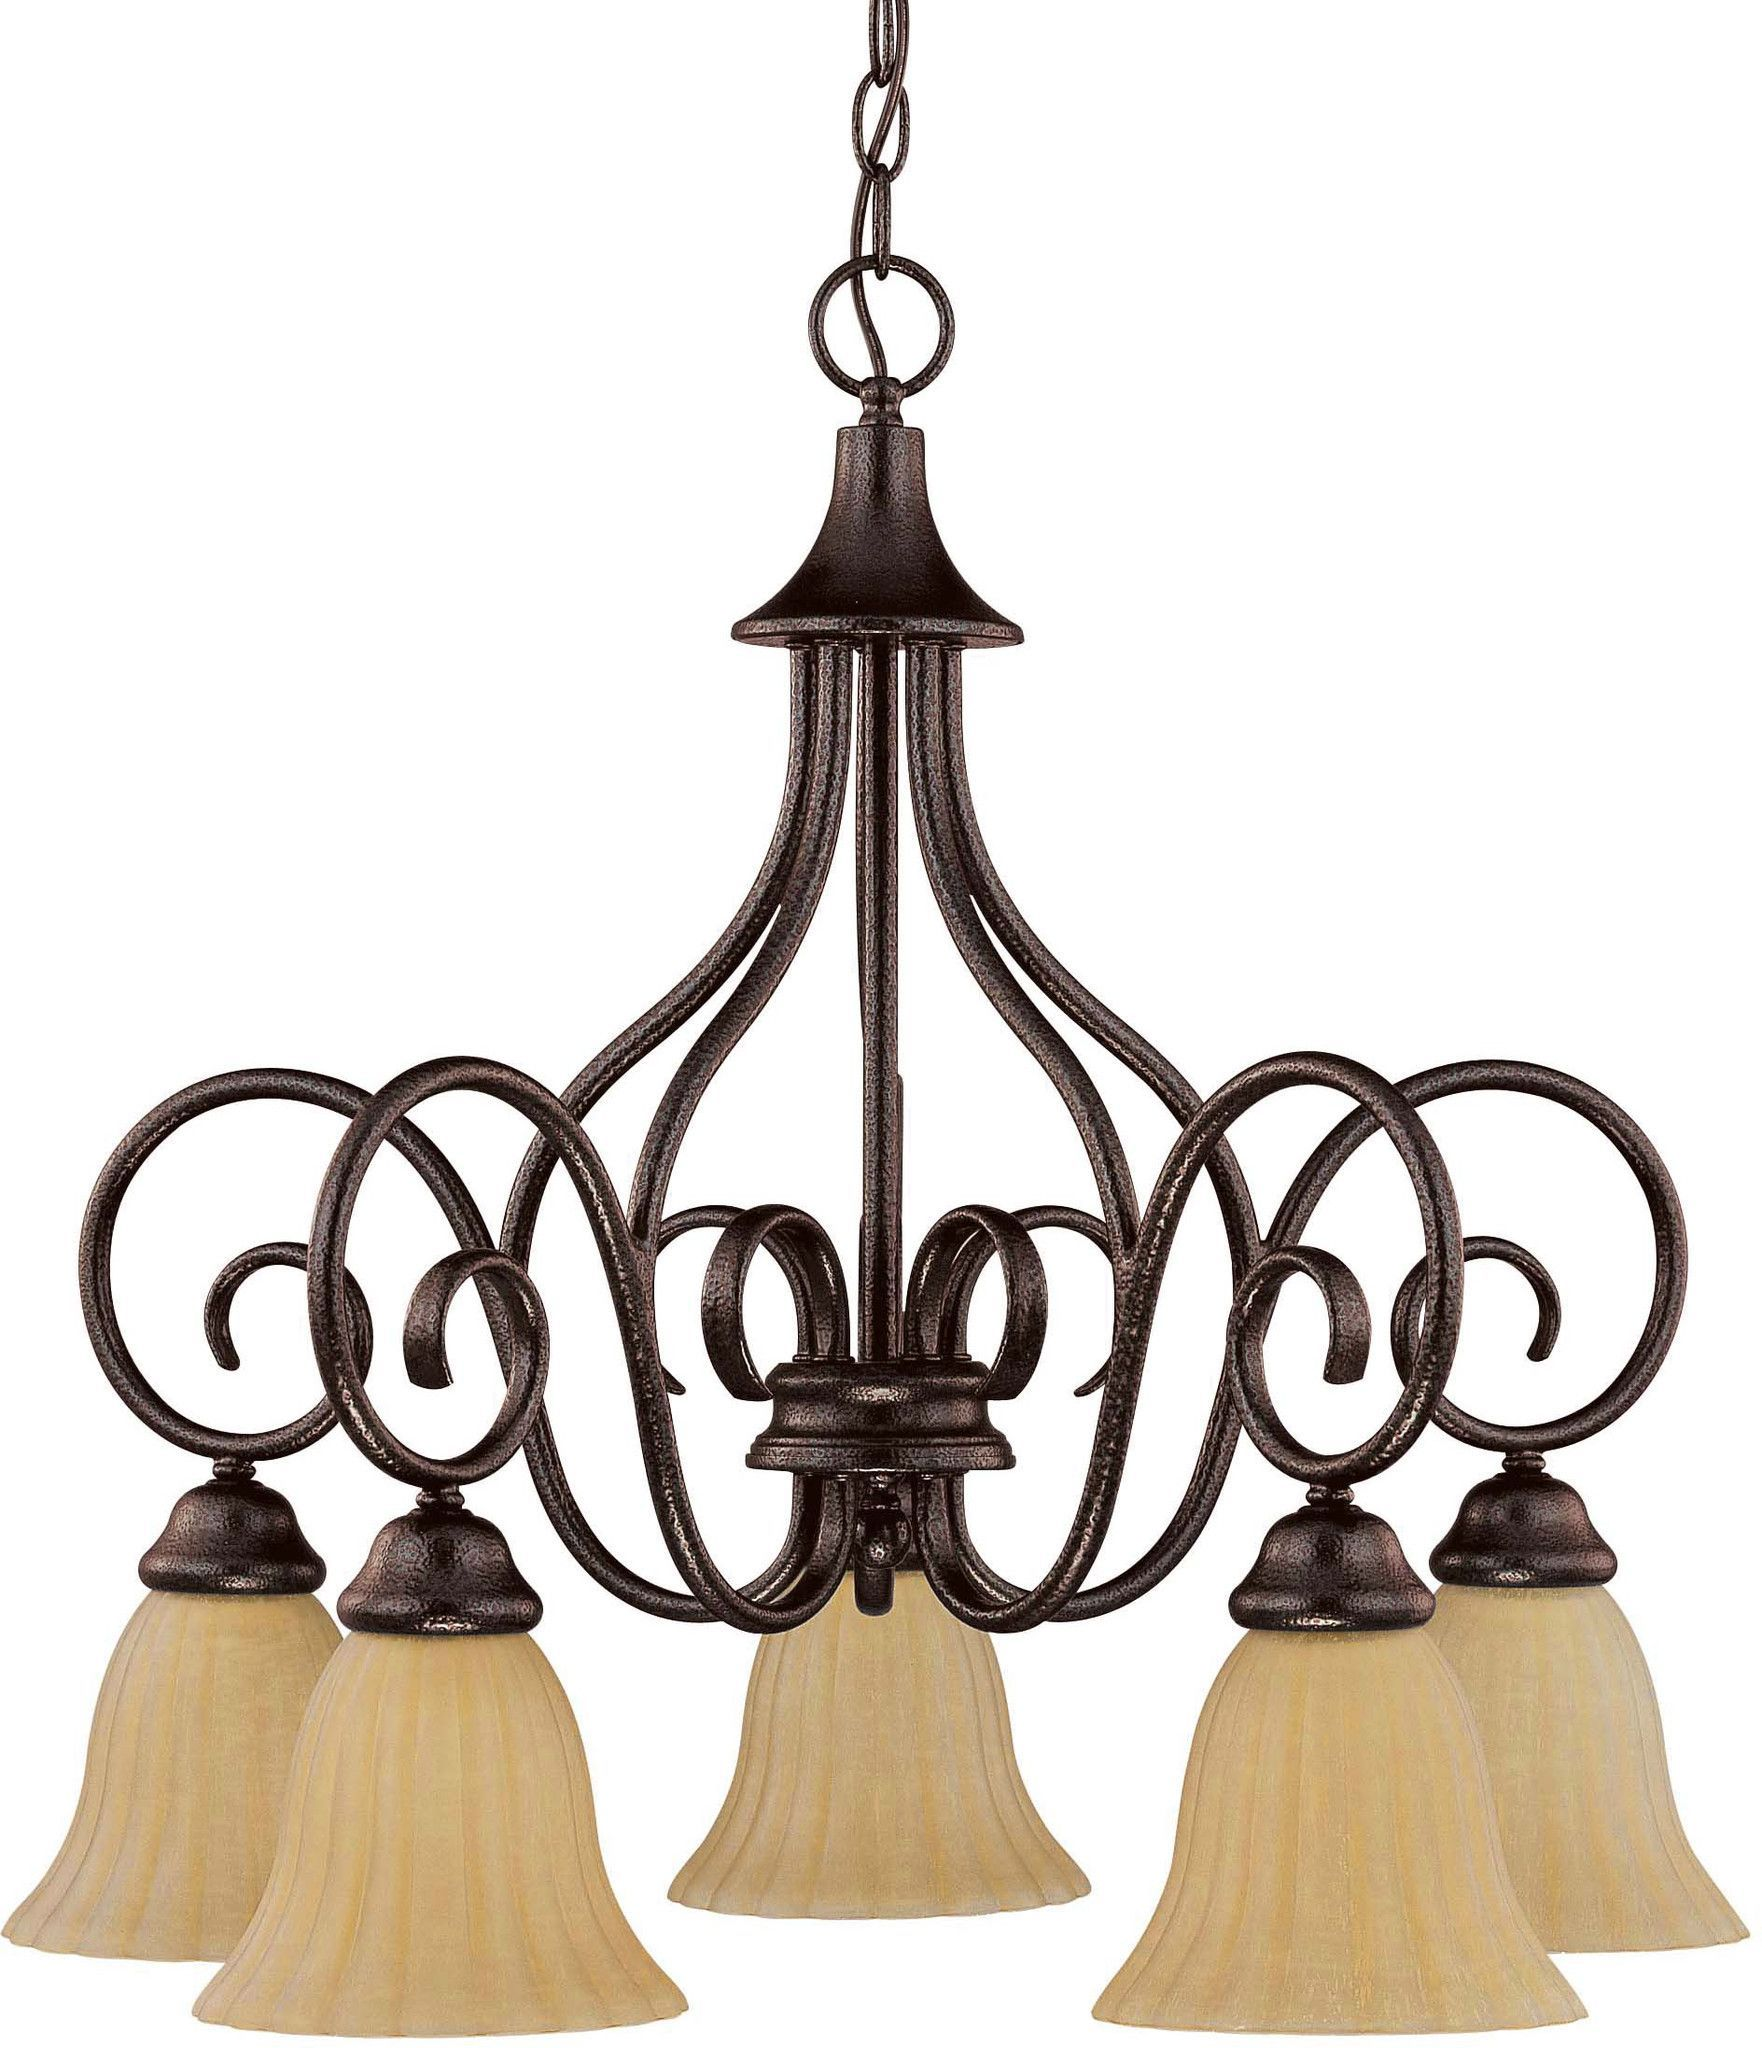 Nuvo Moulan ES - 5 Light Chandelier - Arms Down - (5) 13w GU24 Lamps Included